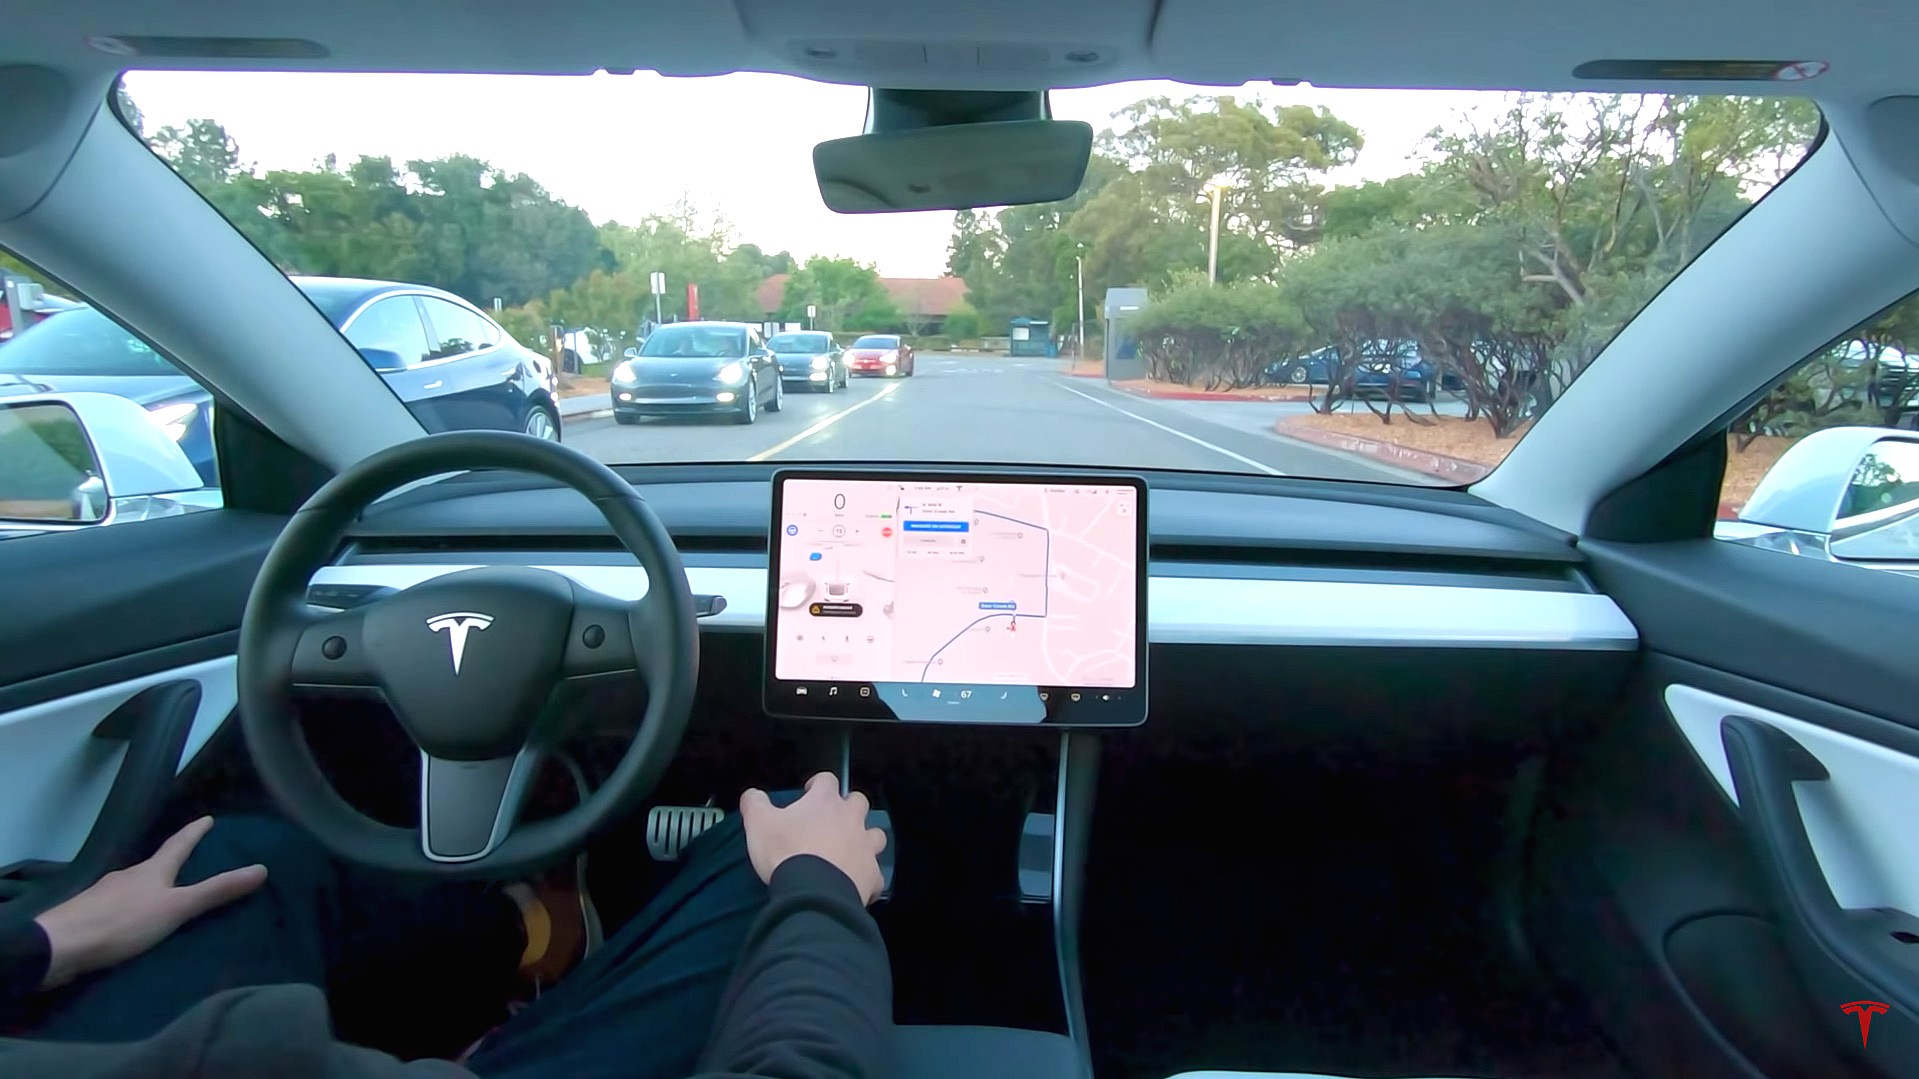 Tesla S In House Full Self Driving Chip Puts Tsla 4 Years